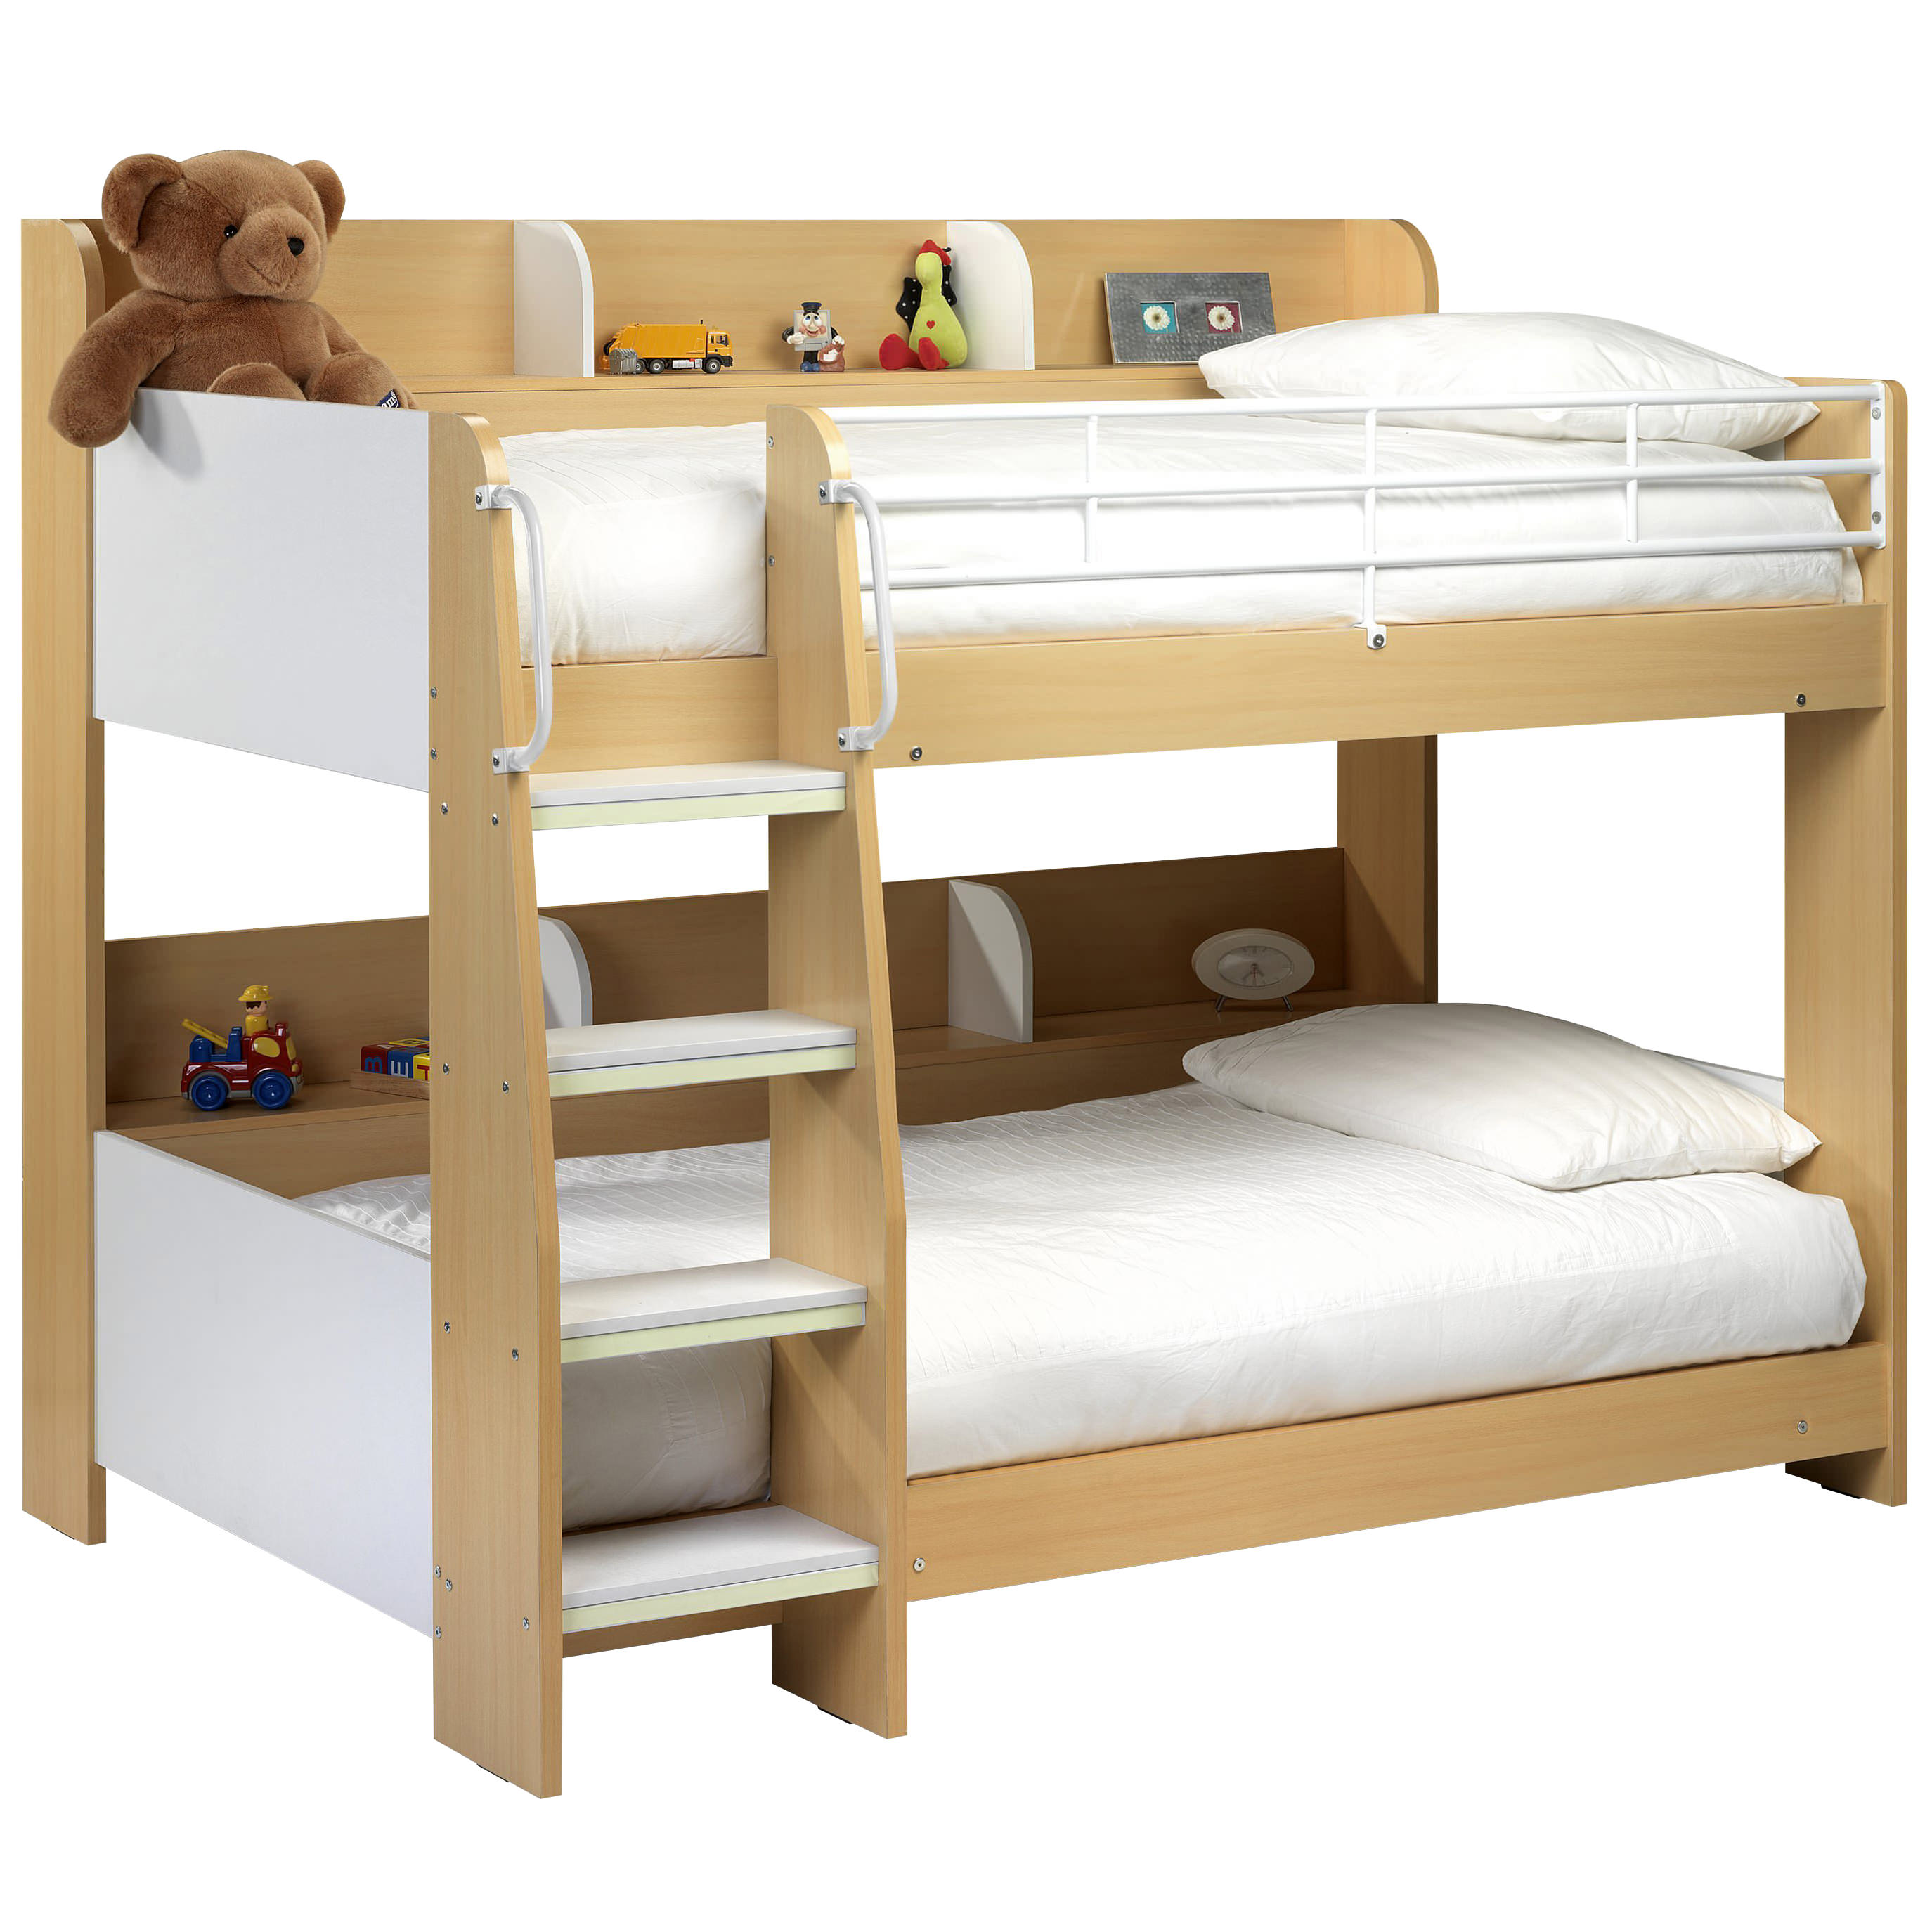 Maple Finish White Childrens Kids Bunk Bed Frame Single 3ft Ebay